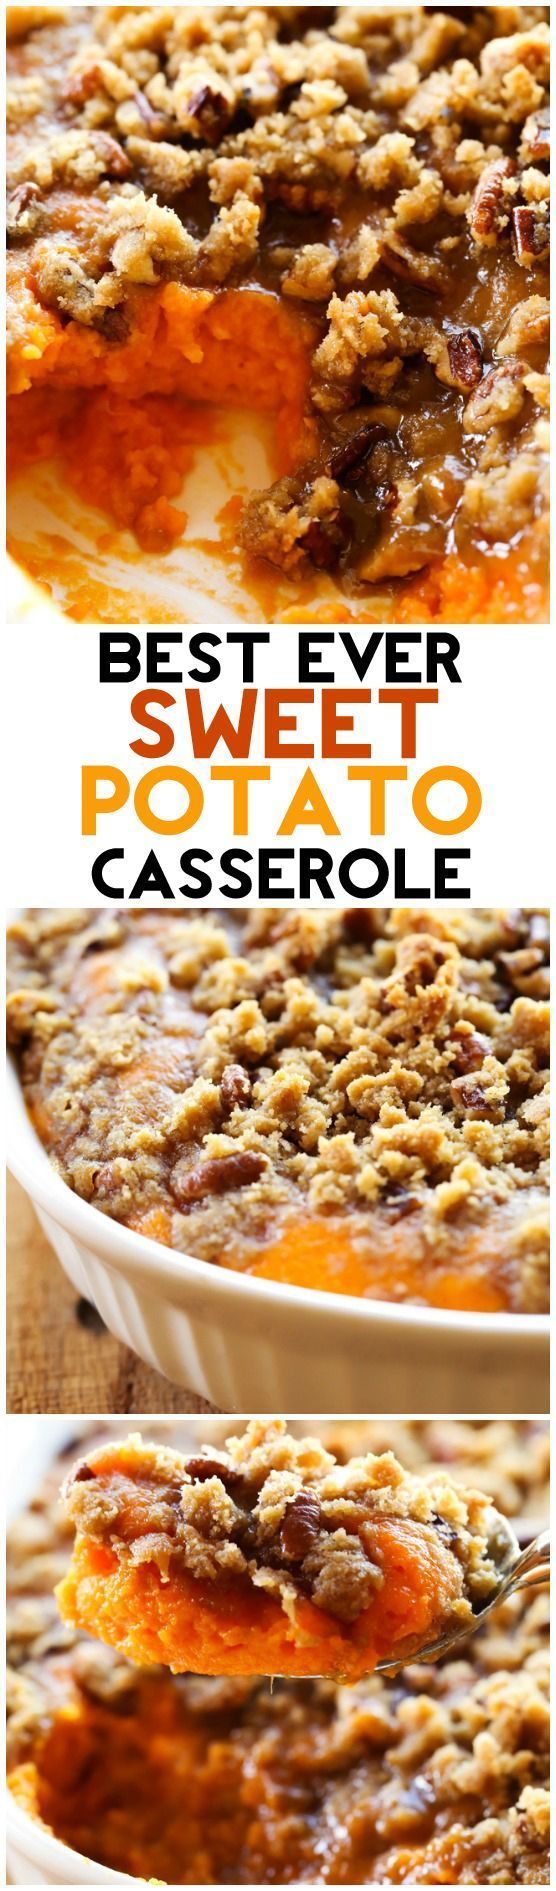 This Sweet Potato Casserole is my absolute FAVORITE side dish at Thanksgiving or…